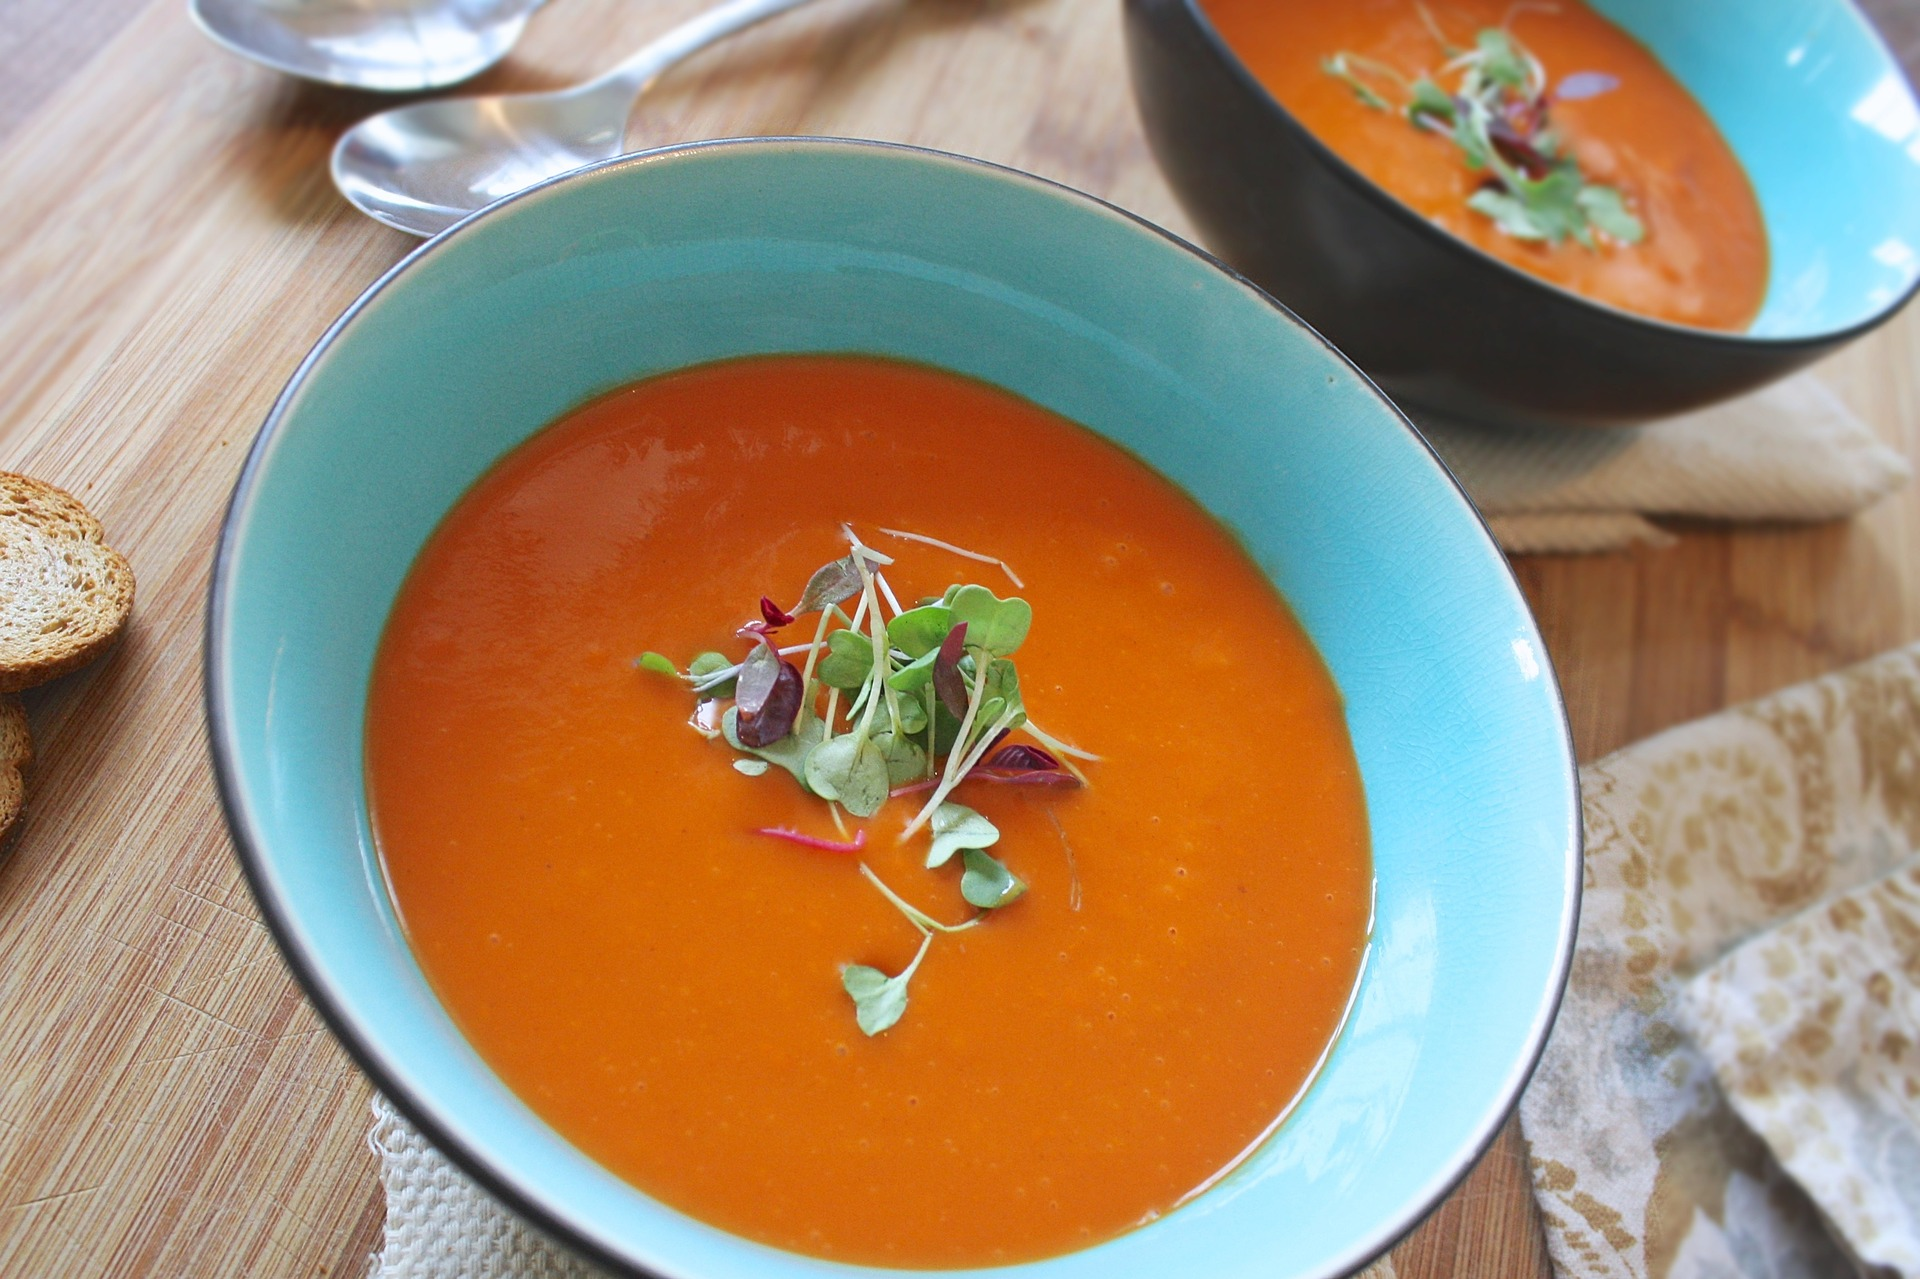 Creamy tomato and red pepper soup | A recipe from Alaskaknitnat.com